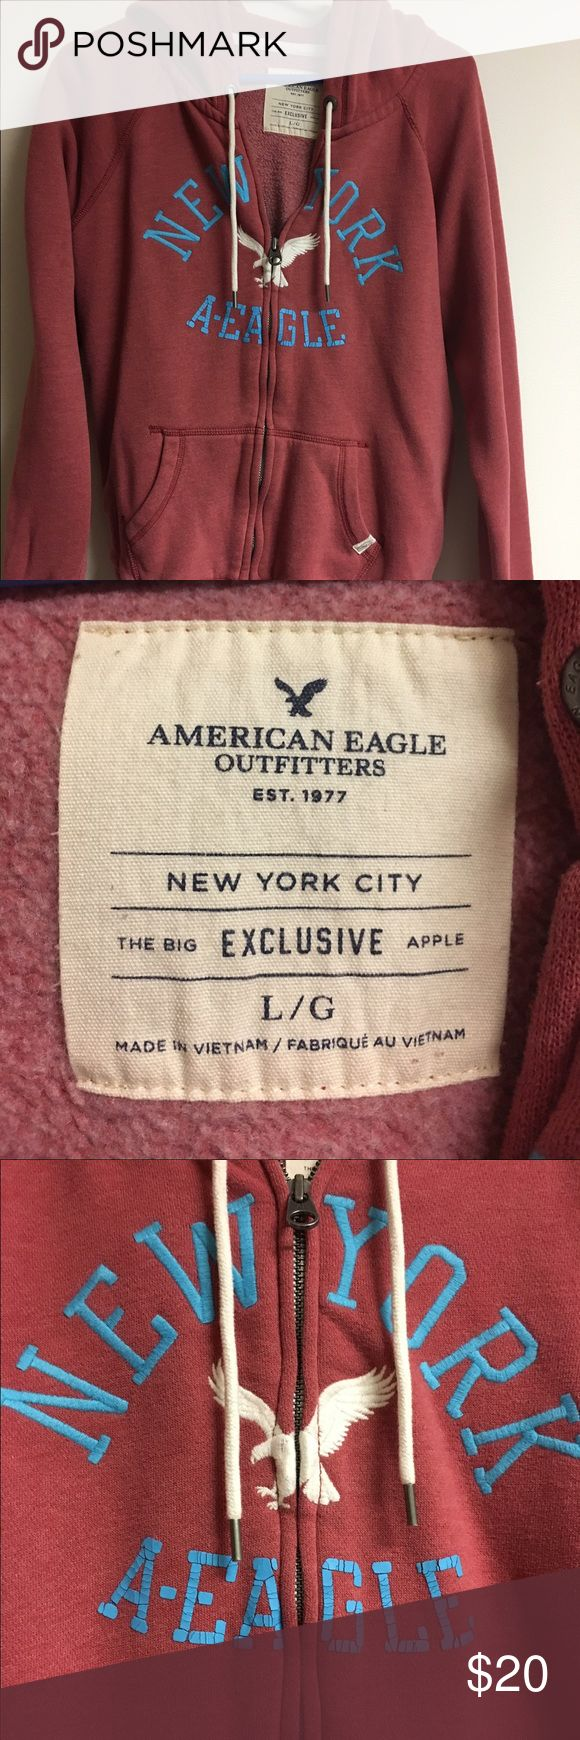 American Eagle Large Zip Up Hoodie The Big Apple The Big Apple Exclusive, super soft American Eagle Large Zip Up Hoodie. No stains or flaws of any kind, no visible signs of excess wear. The A-EAGLE on the front was made to look cracked like that for the vintage look. Check my other items for bundles! I'll be listing about 200 items in the next couple of days. I have entirely too many clothes and I'm running out of closet space! Time to consolidate and find new homes for all these pieces…